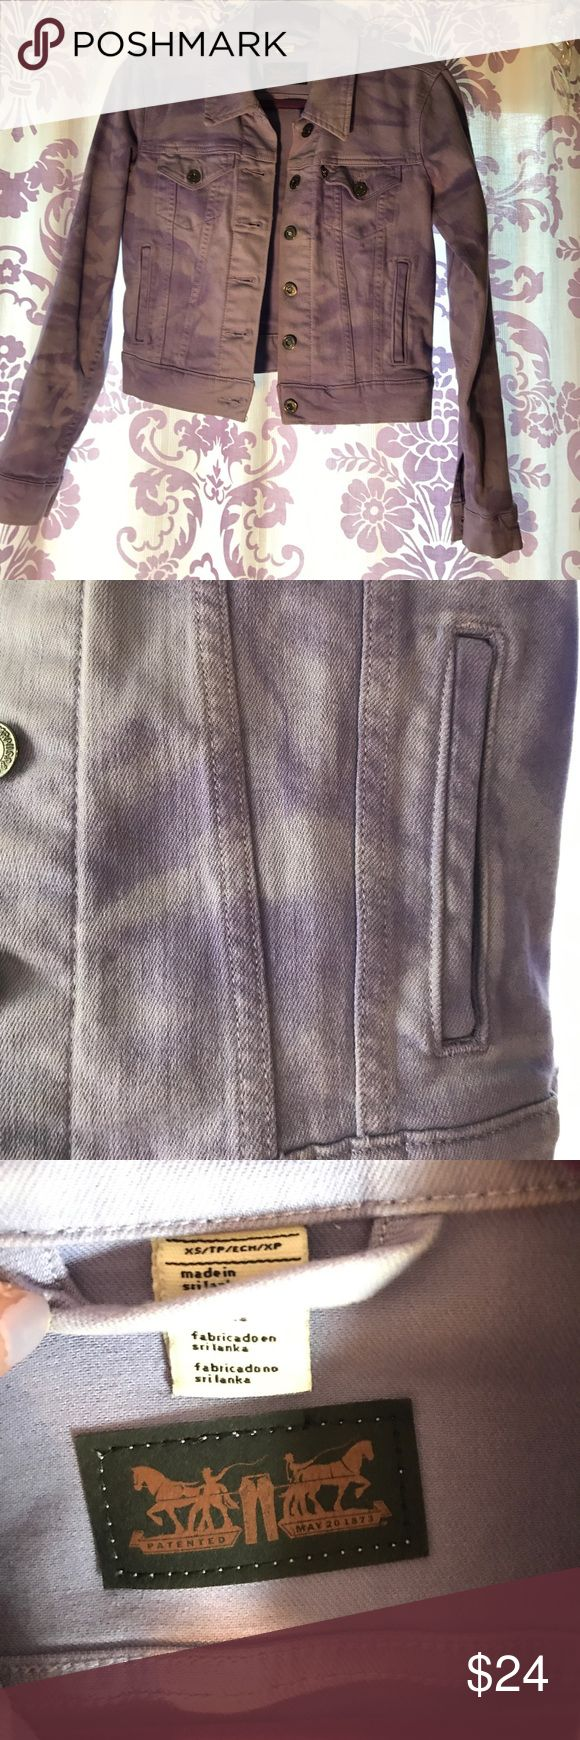 Lavender Jean Jacket Never been worn Levi lavender jean jacket. Size XS great for the spring and summer! Jacket has a distressed purple color patter to it. Levi's Jackets & Coats Jean Jackets